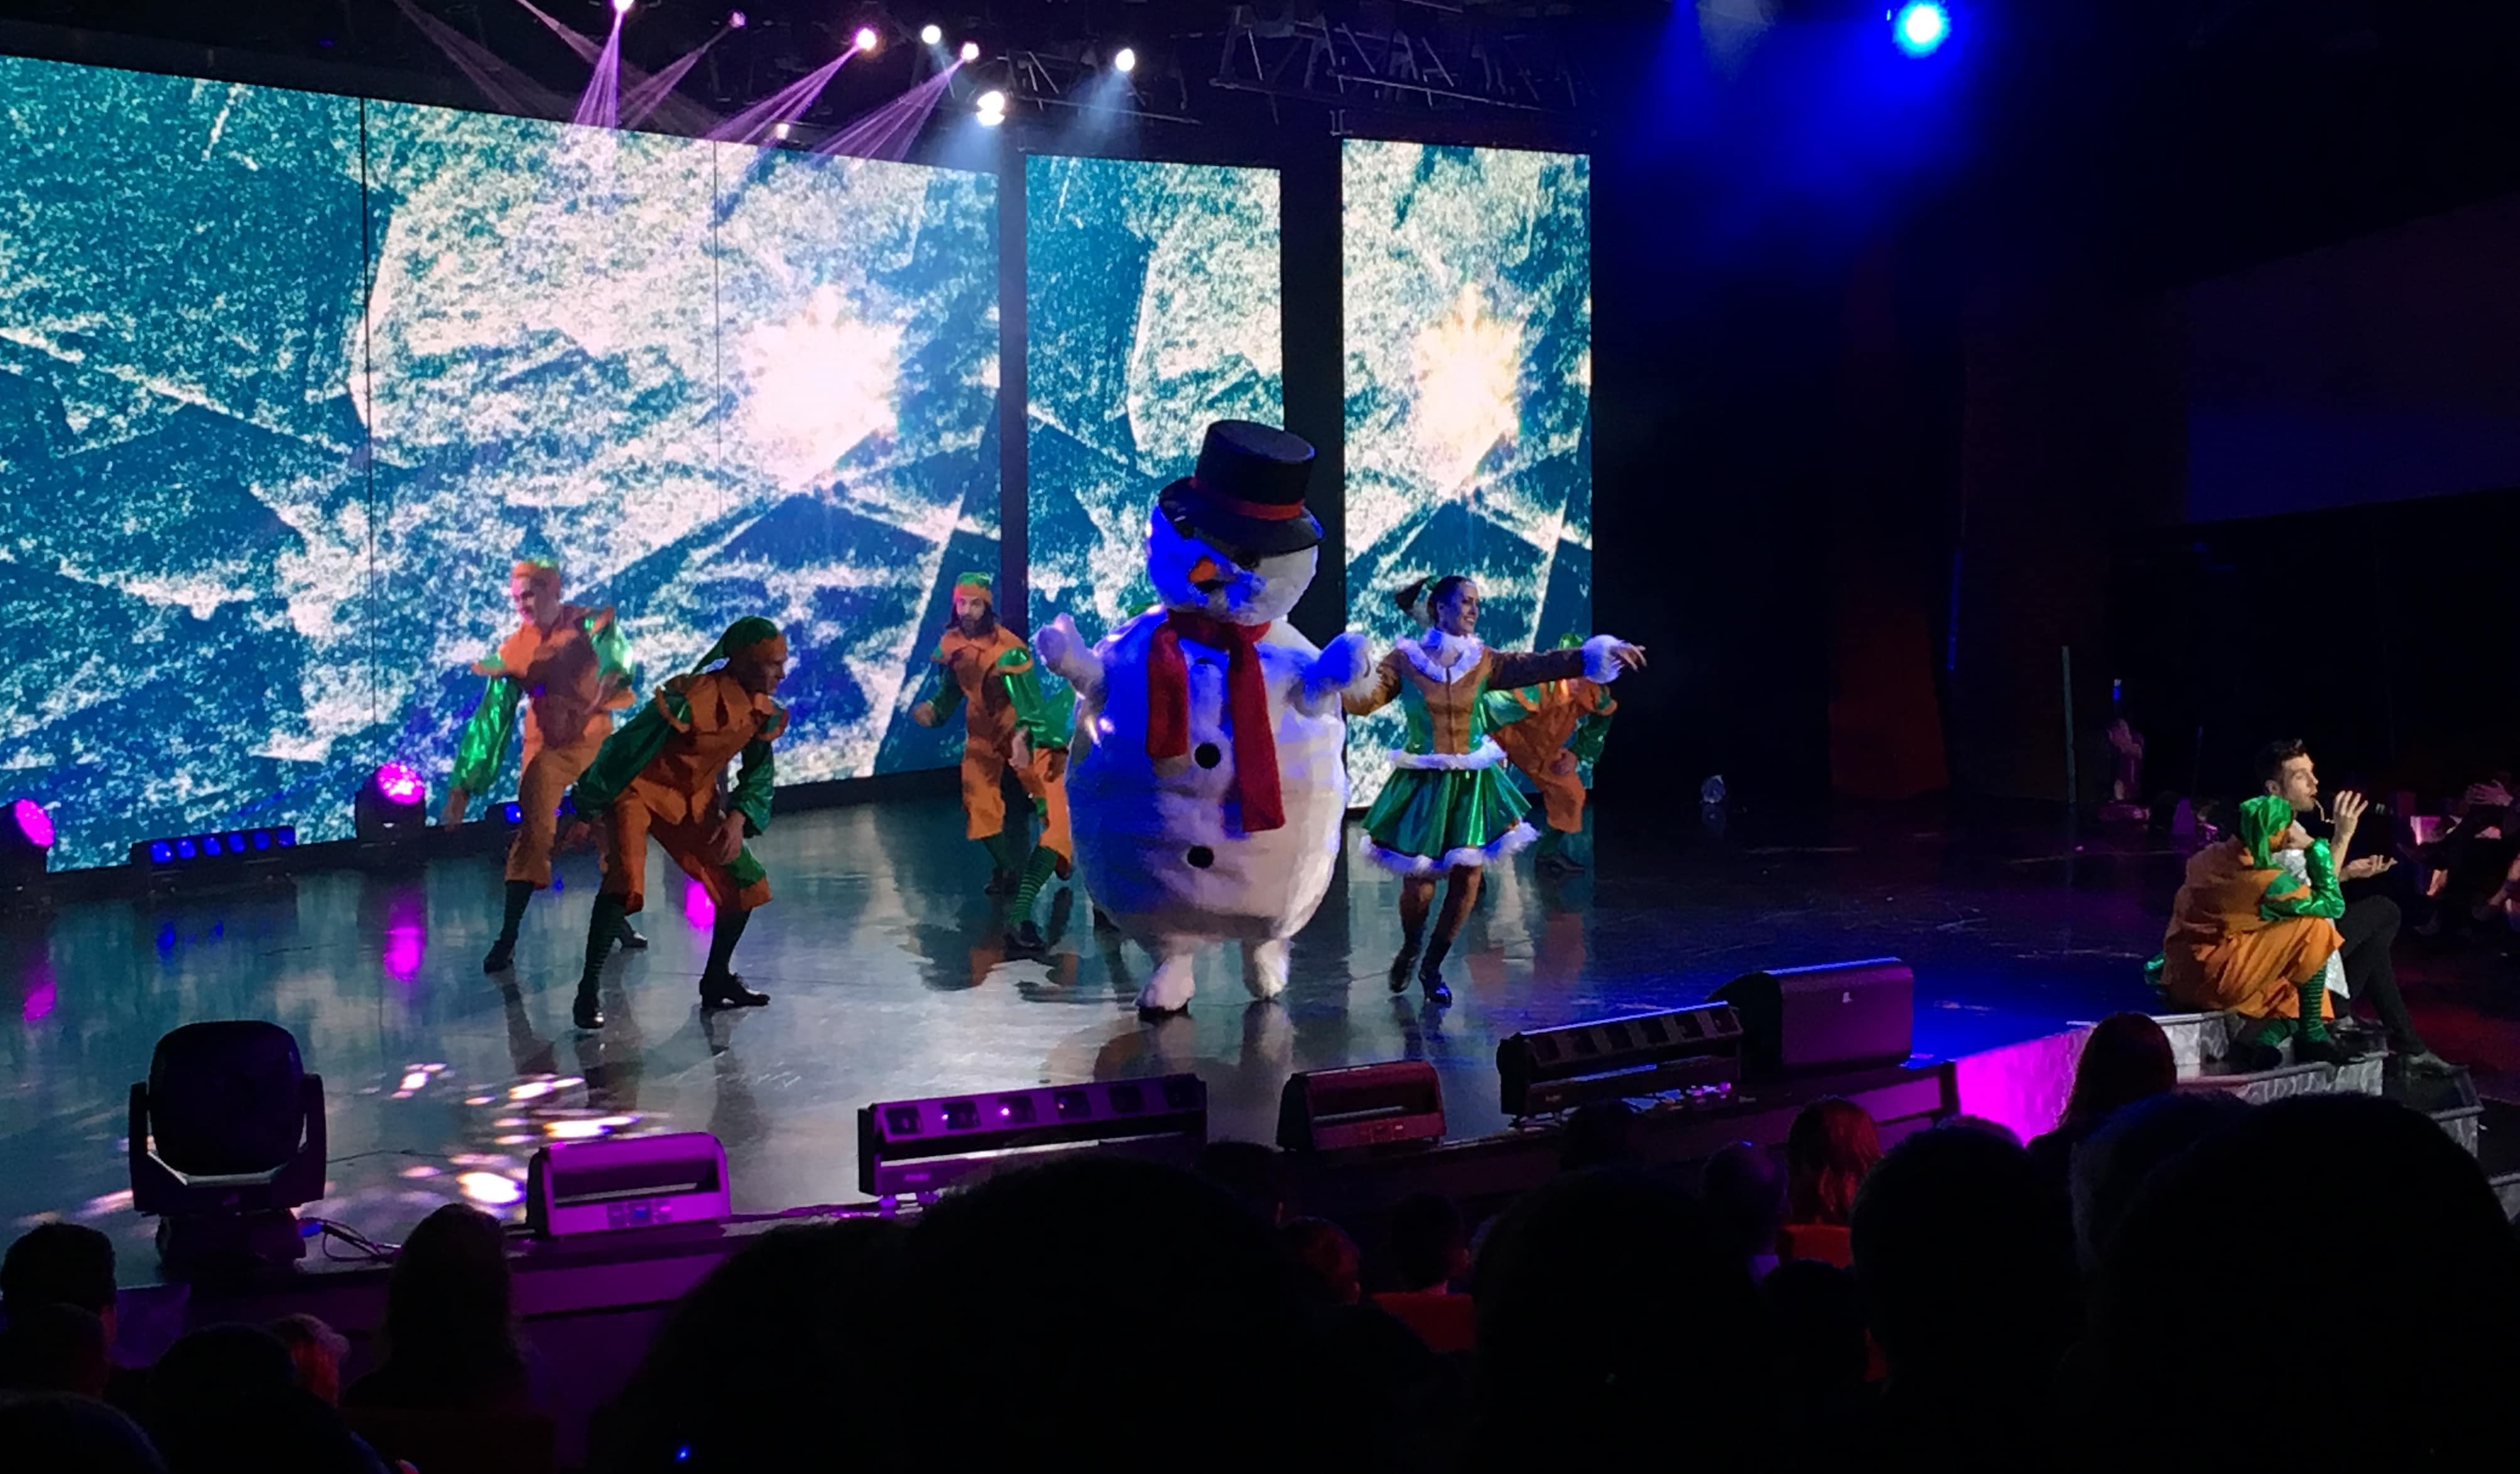 MSC theatre show christmas dancing elves and snowman